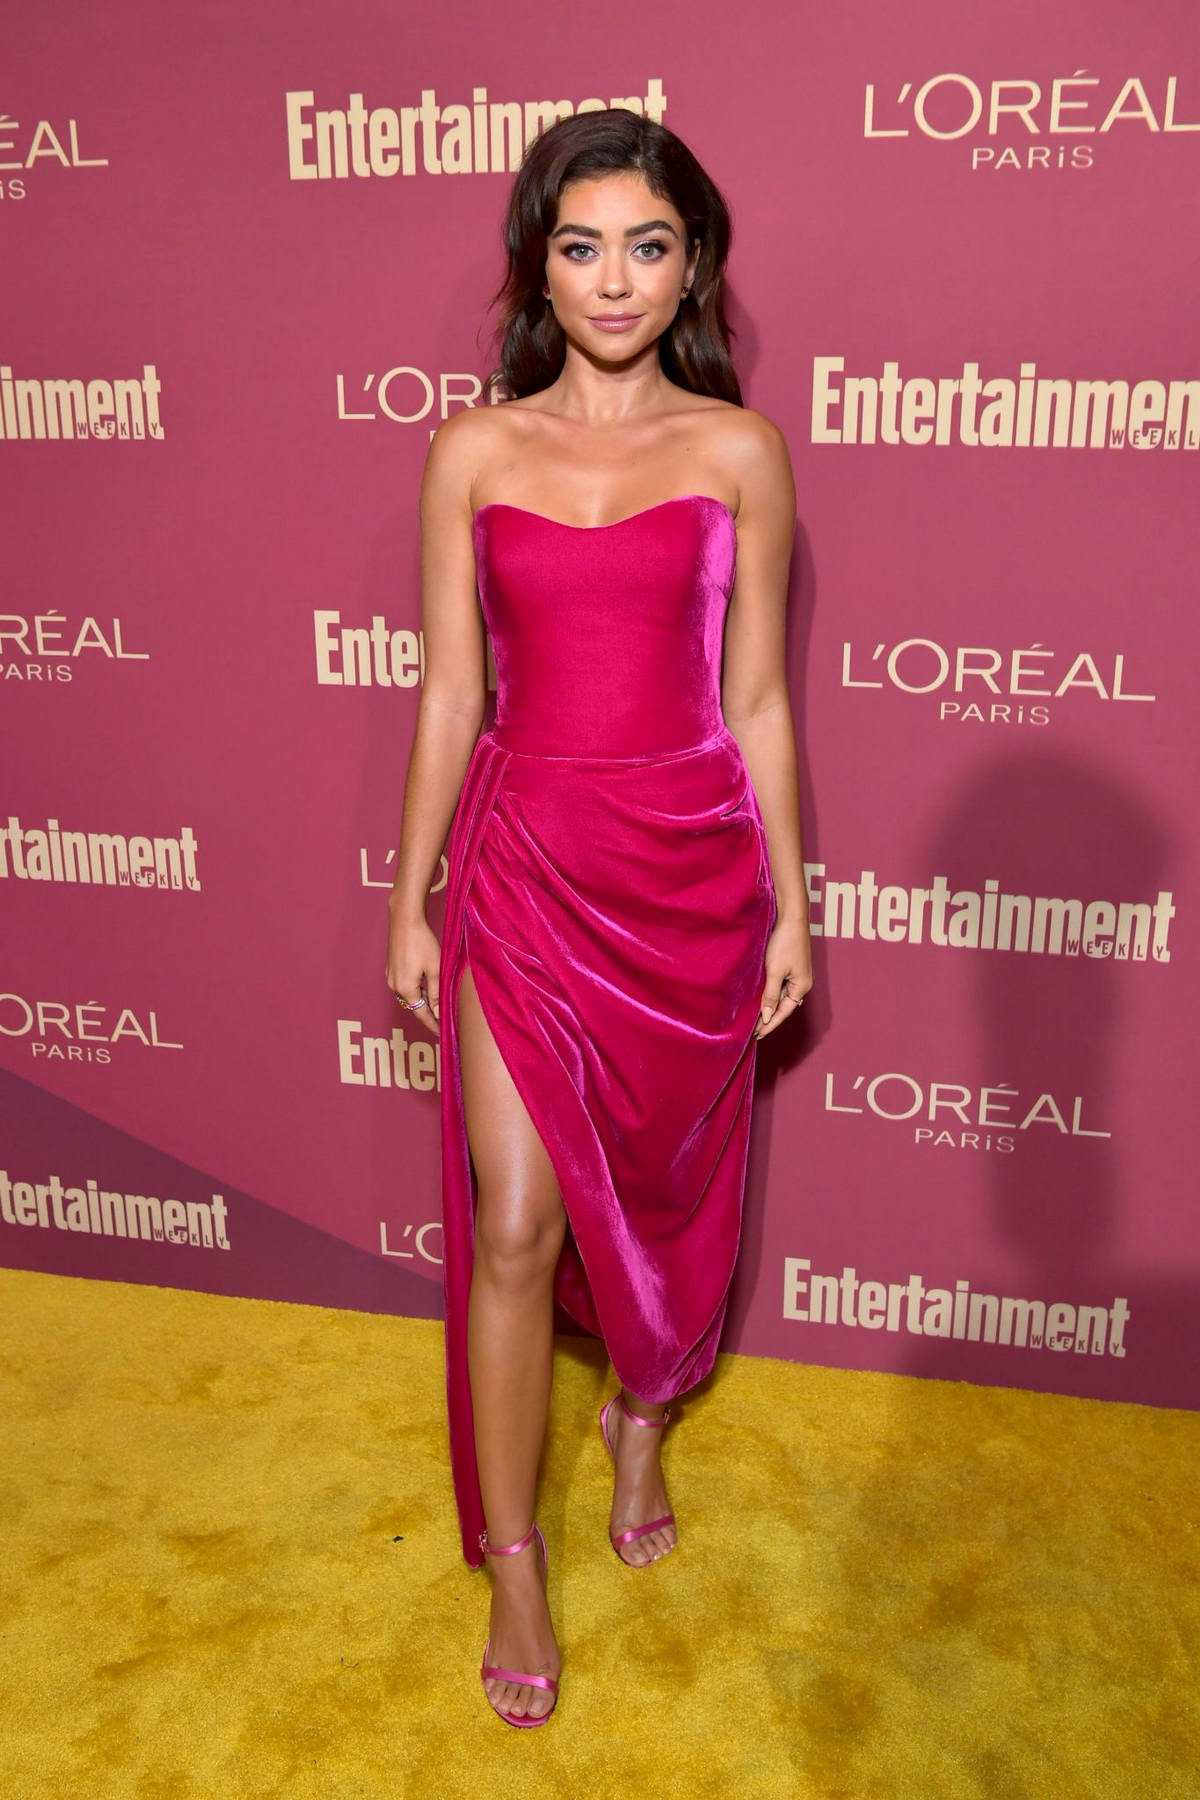 Sarah Hyland attends 2019 Pre-Emmy Party hosted by Entertainment Weekly and L'Oreal Paris in Los Angeles